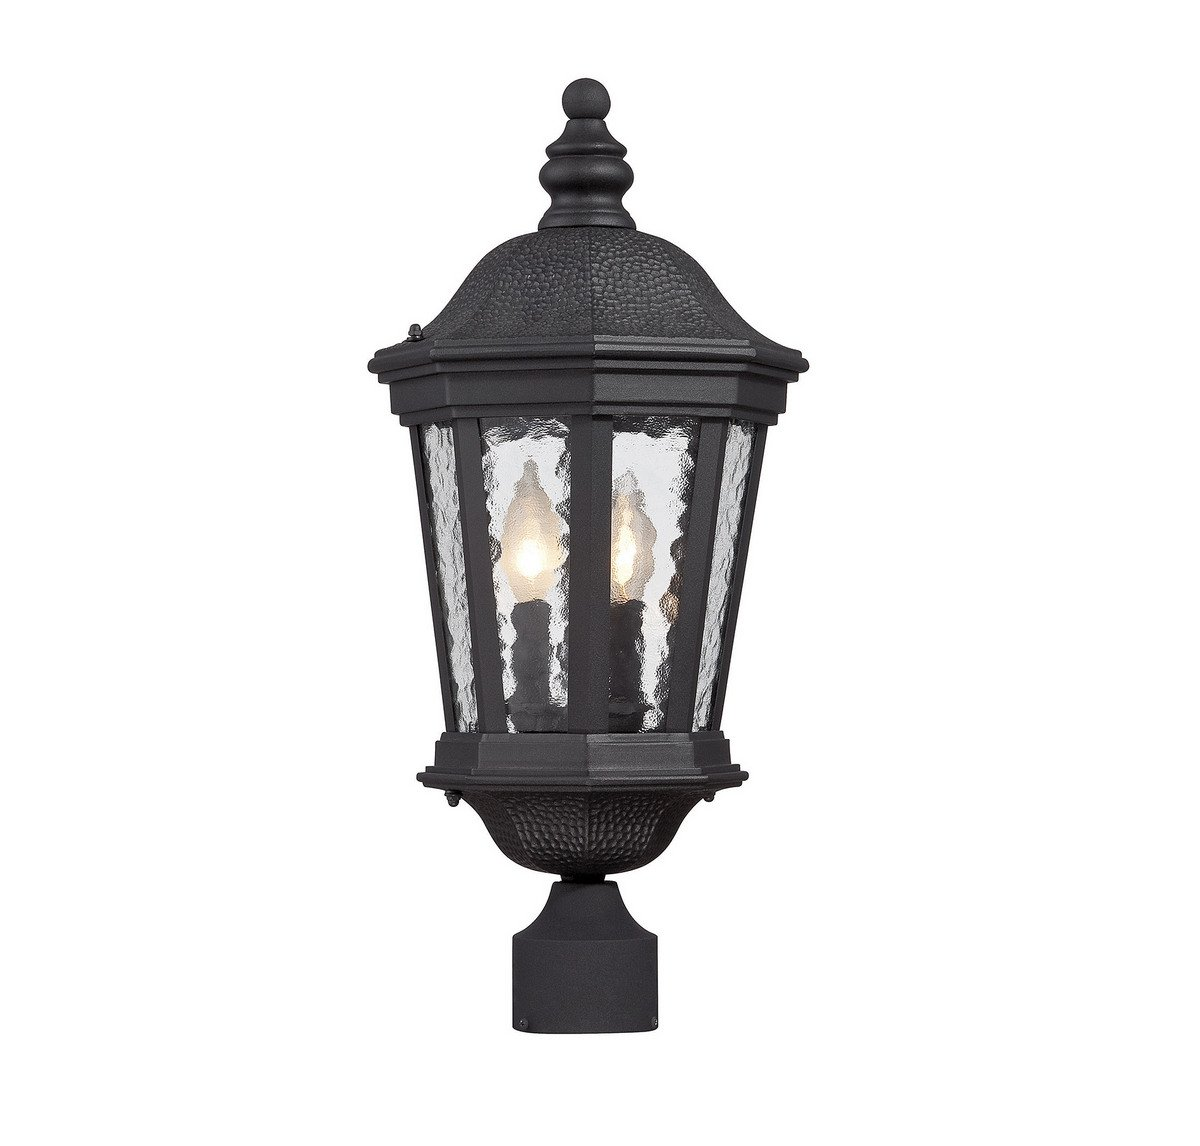 Savoy House 5-5083-BK Hampden Hanging Outdoor Lantern in Black